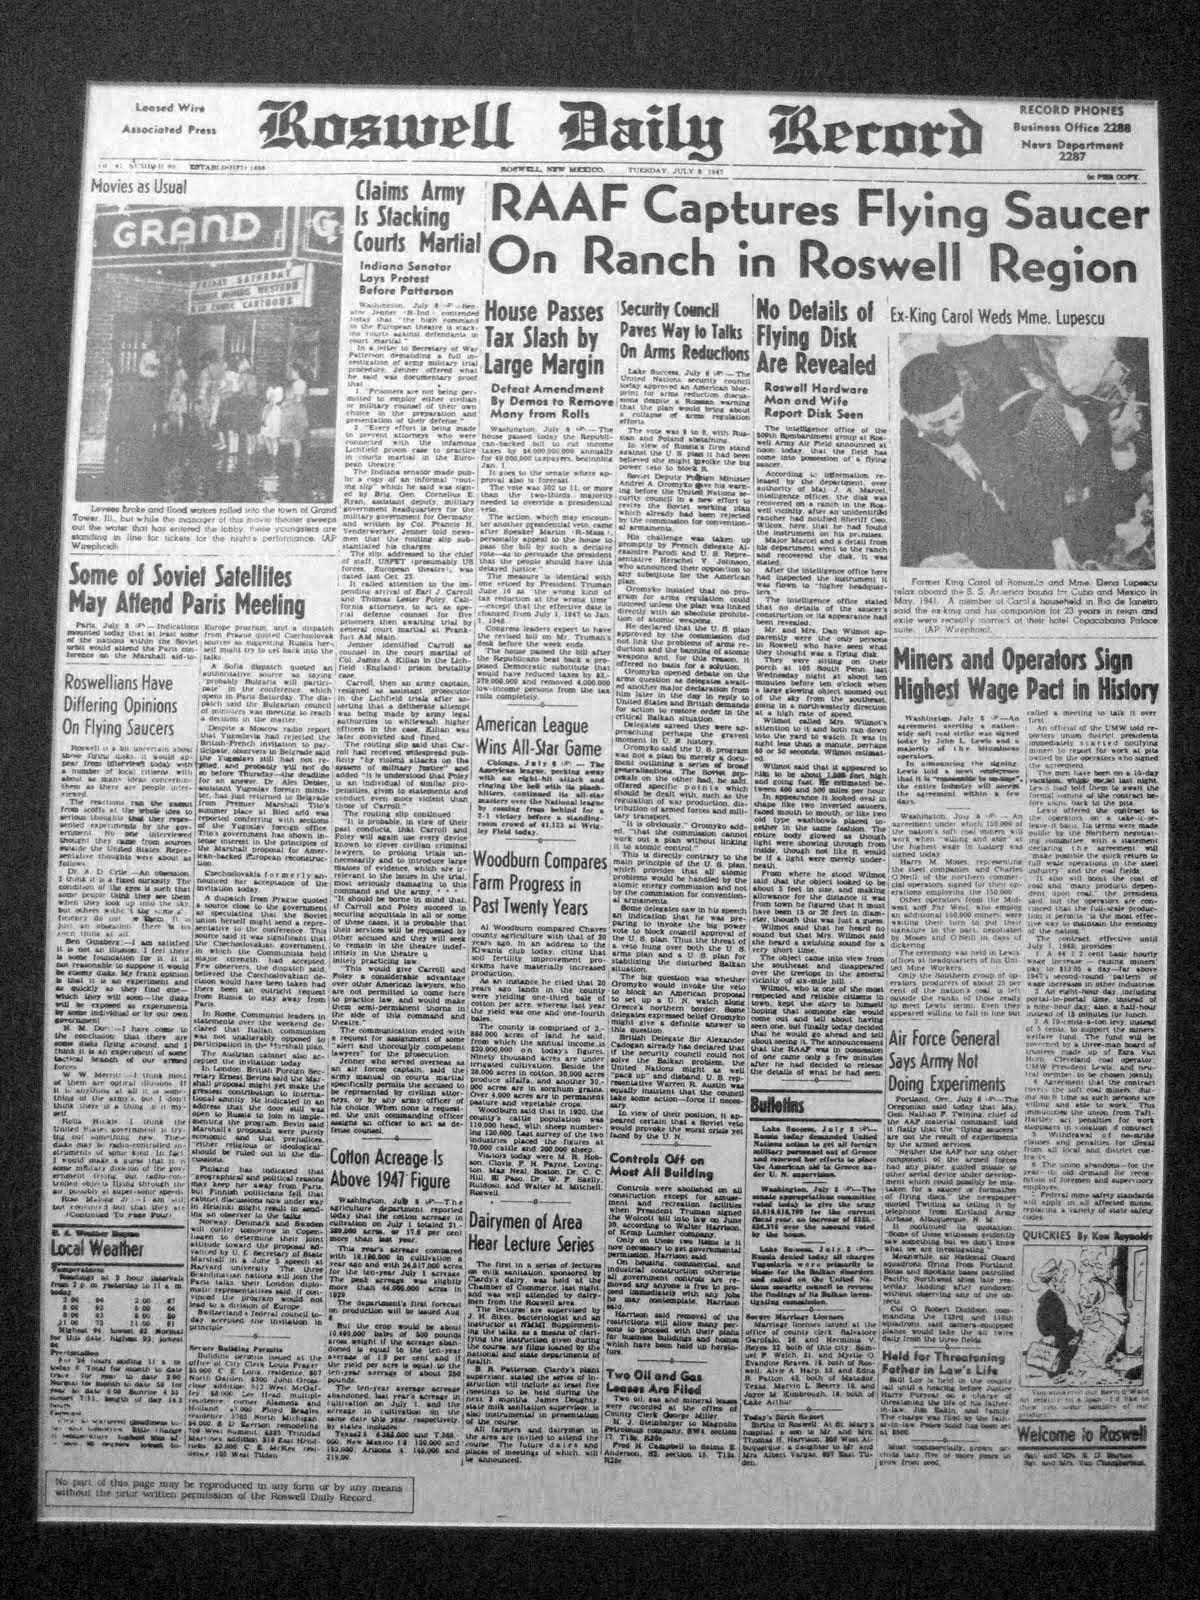 1947 Roswell UFO Incident